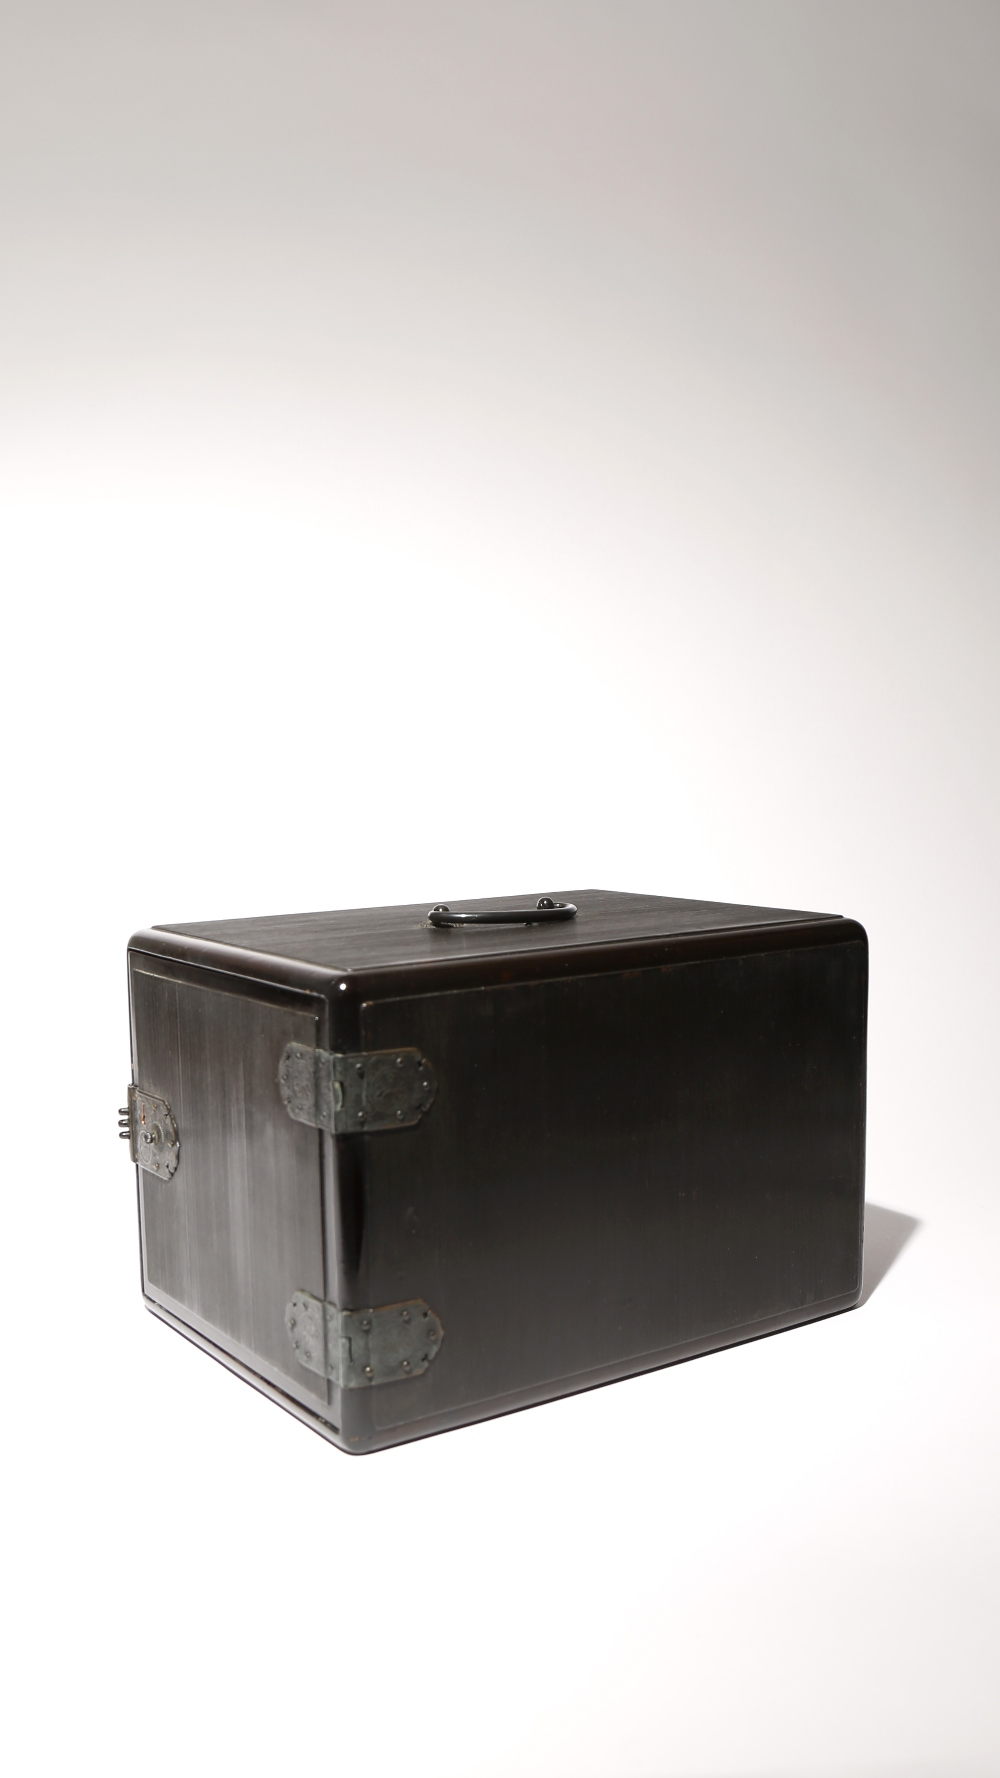 A JAPANESE BLACK LACQUER INRODANSU MEIJI PERIOD, 19TH CENTURY The inro box of typical rectangular - Image 2 of 3